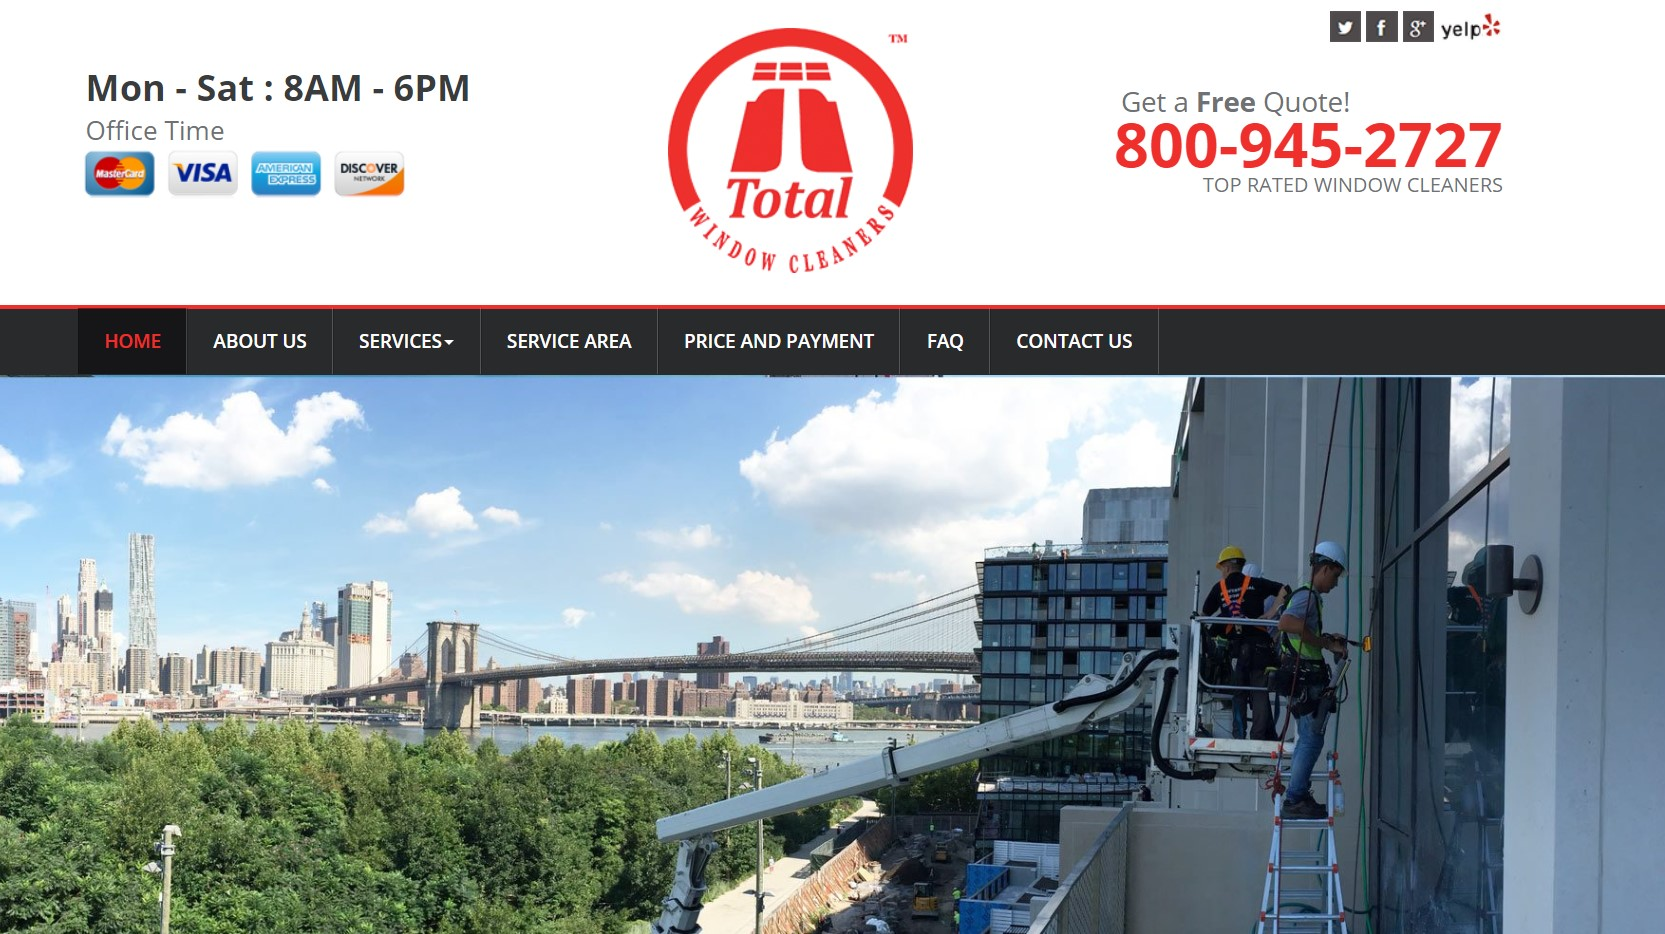 total window cleaner in new york